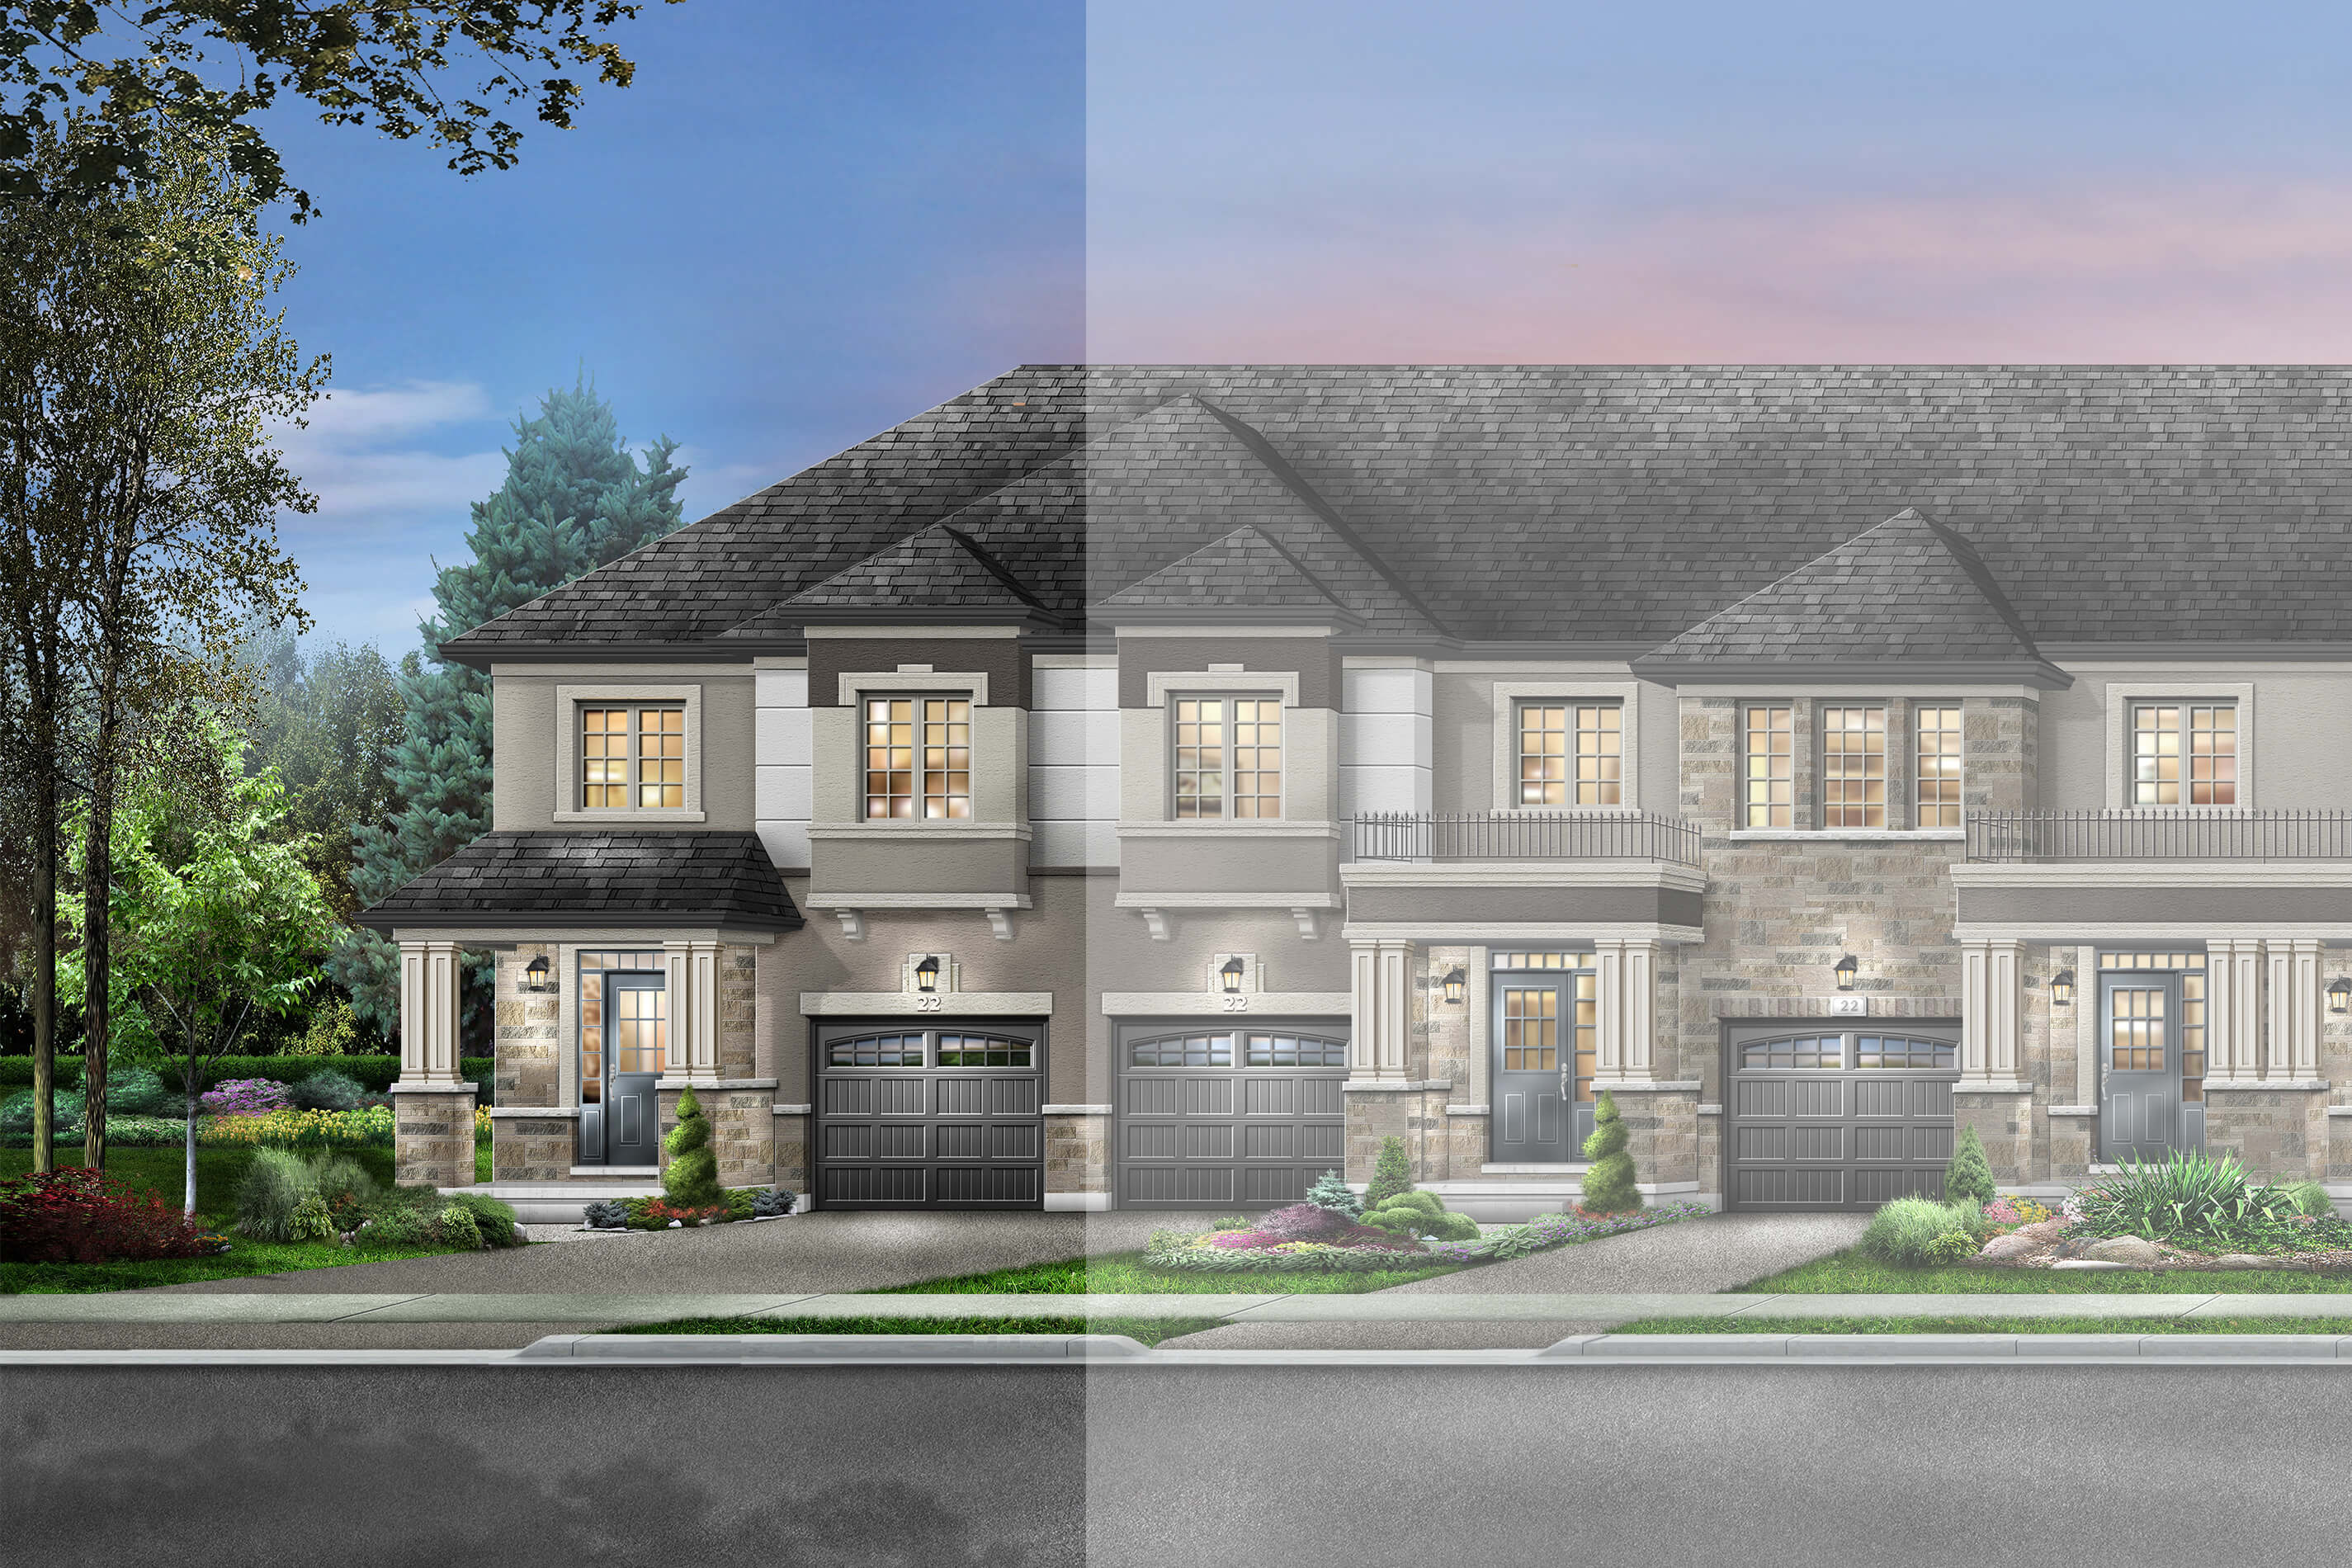 BRANTFORD BRANTVIEW HEIGHTS -NOW OPEN Freehold Towns $469,990 Detached $649,990- ..SOLD...